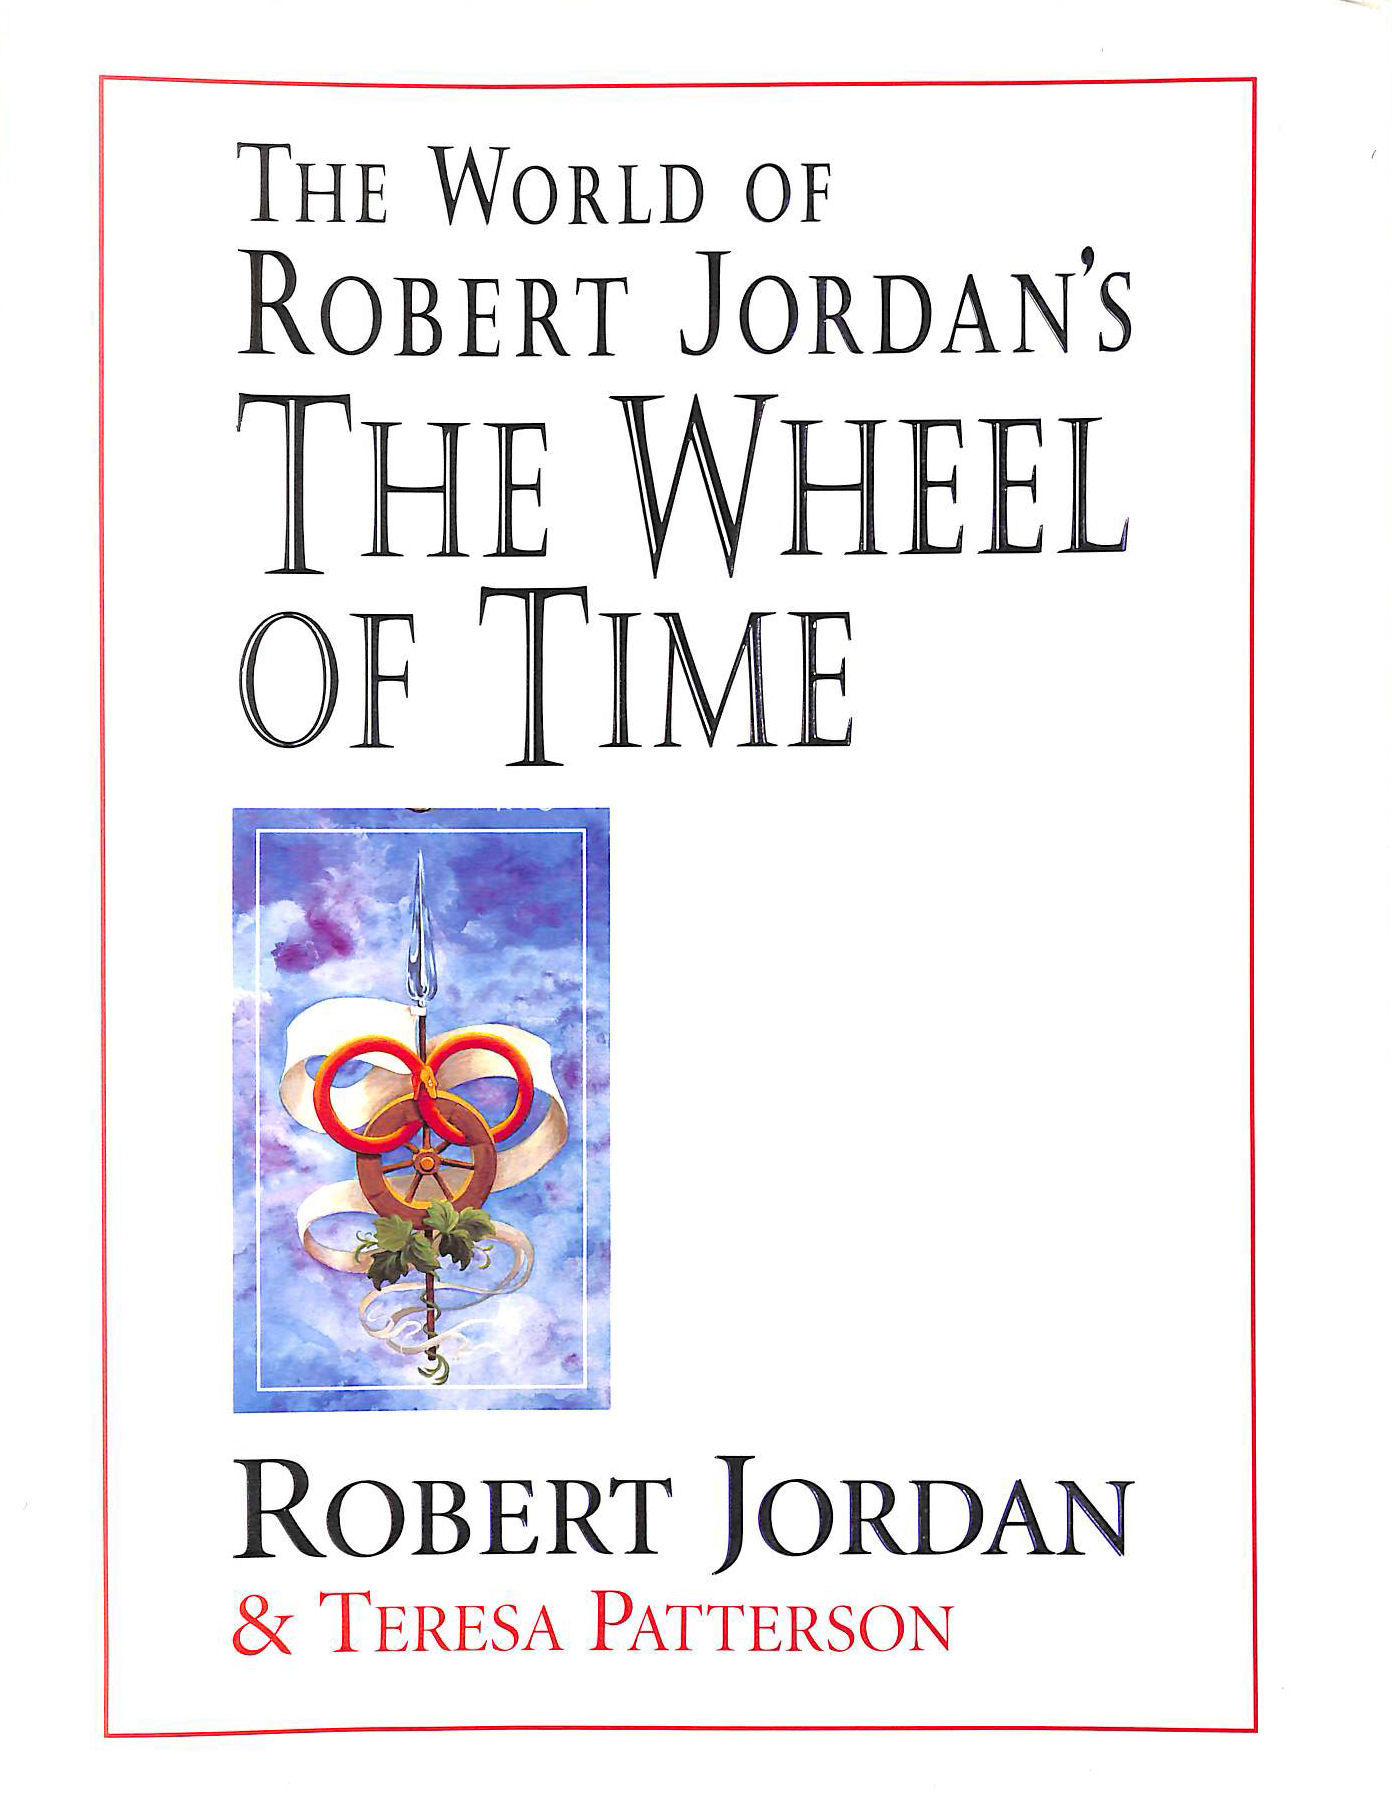 Image for The World of Robert Jordan's The Wheel of Time